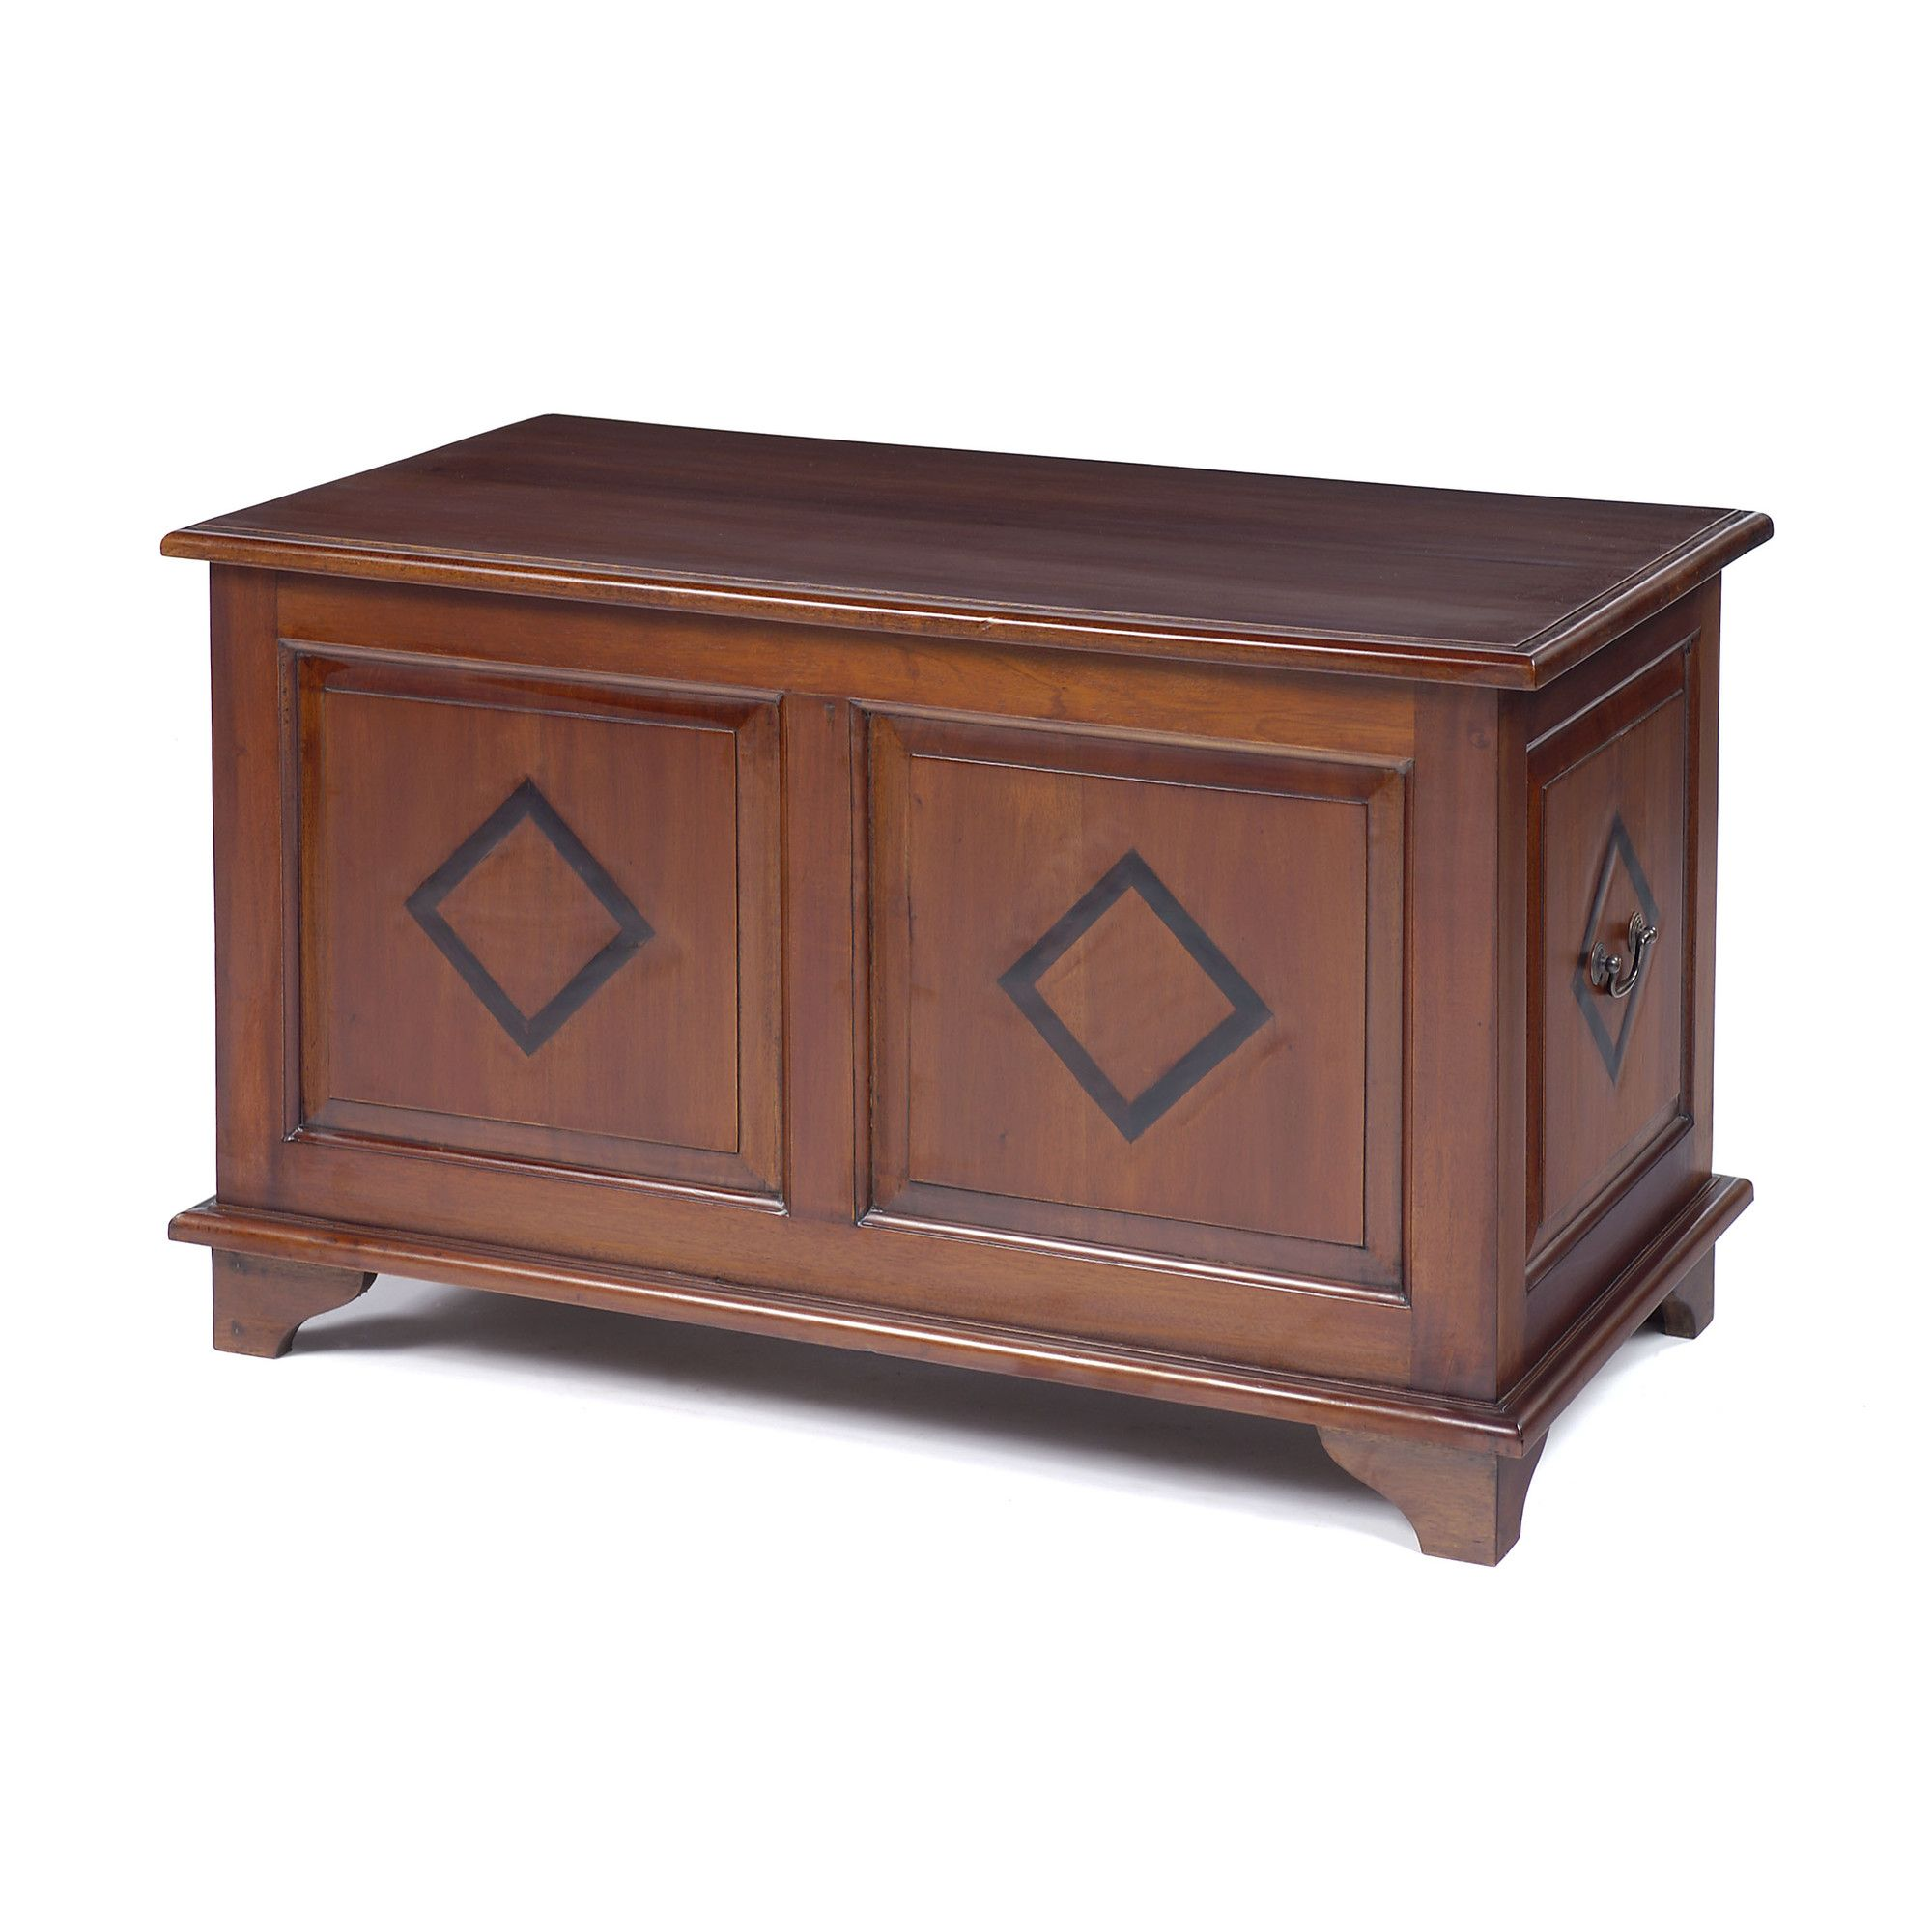 Anderson Bradshaw Victorian Inlaid Panelled Chest at Tesco Direct